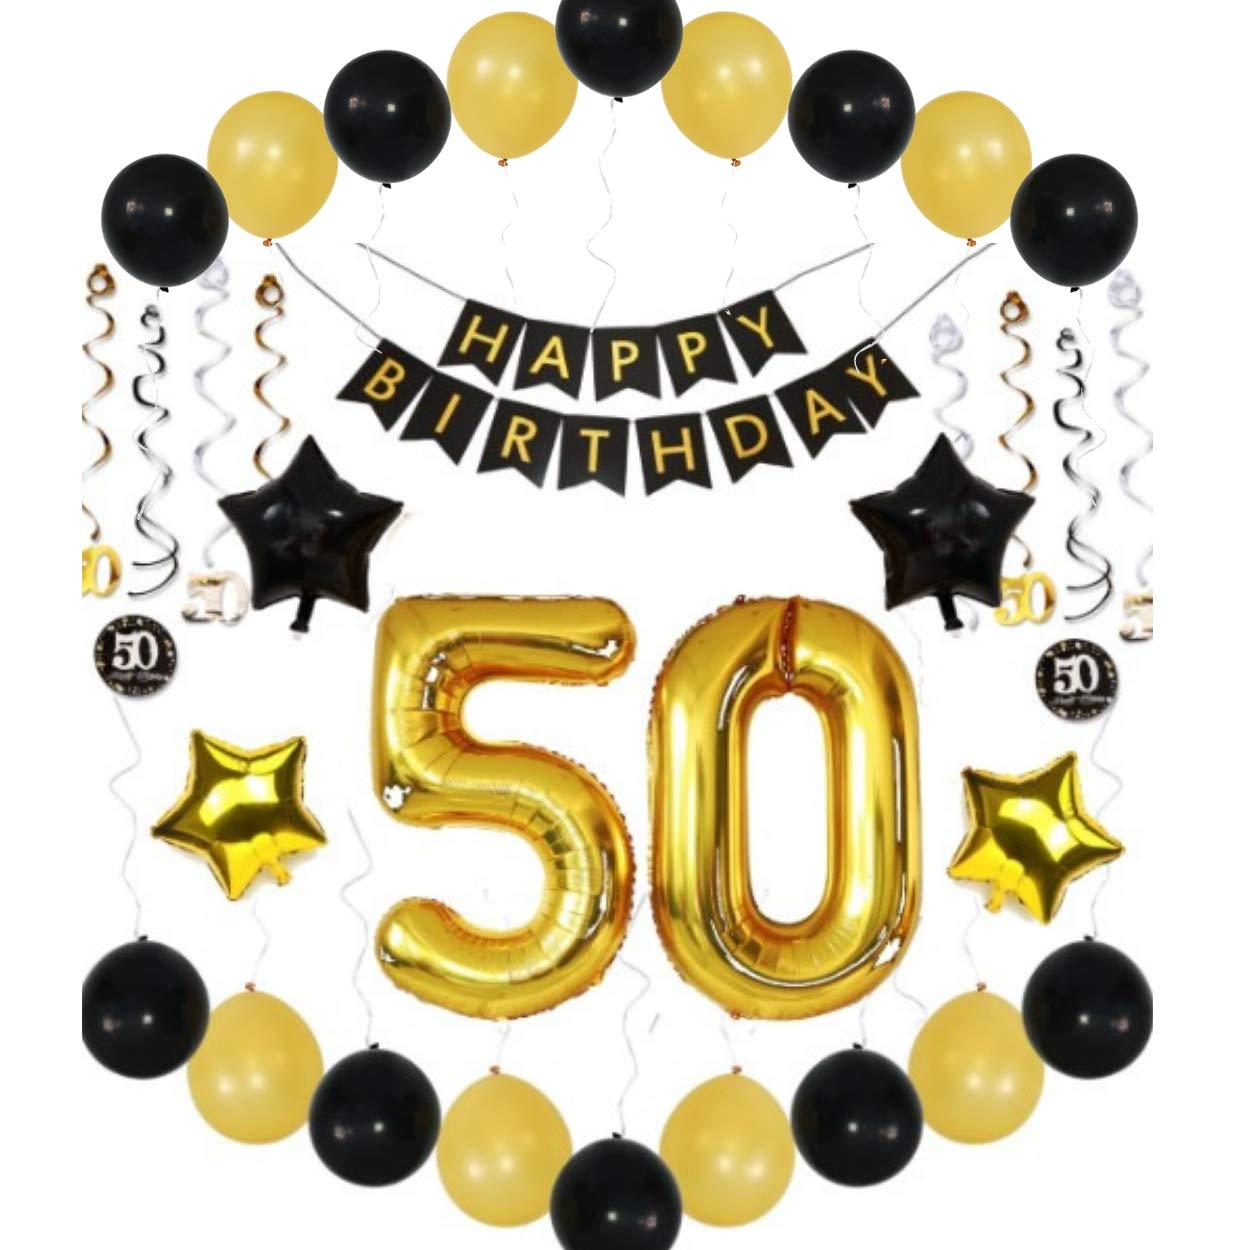 50th Birthday Party Decorations Men Woman Him Her Banner Balloons Sparkling Hanging Swirls